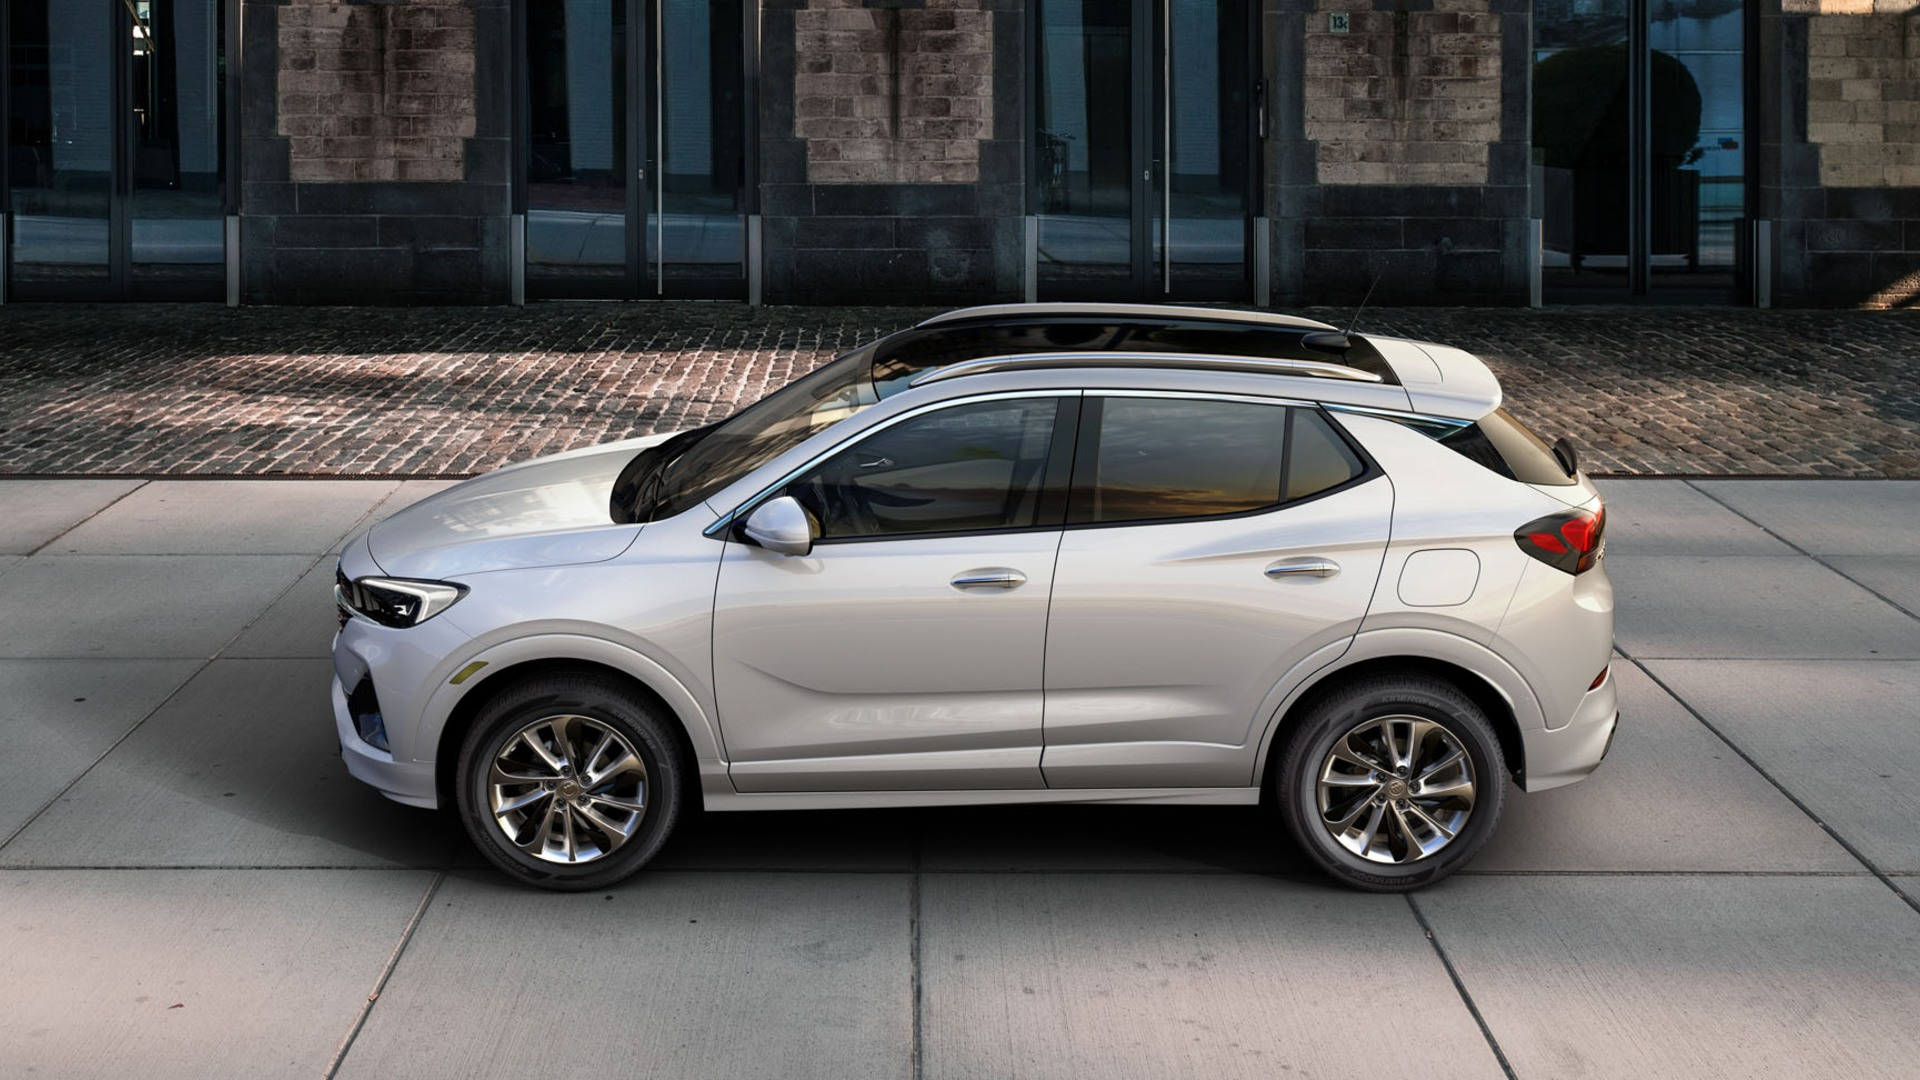 Buick Reveals U.s. Specs For The 2020 Encore Gx 2022 Buick Encore Gx Ground Clearance, Horsepower, Interior Colors